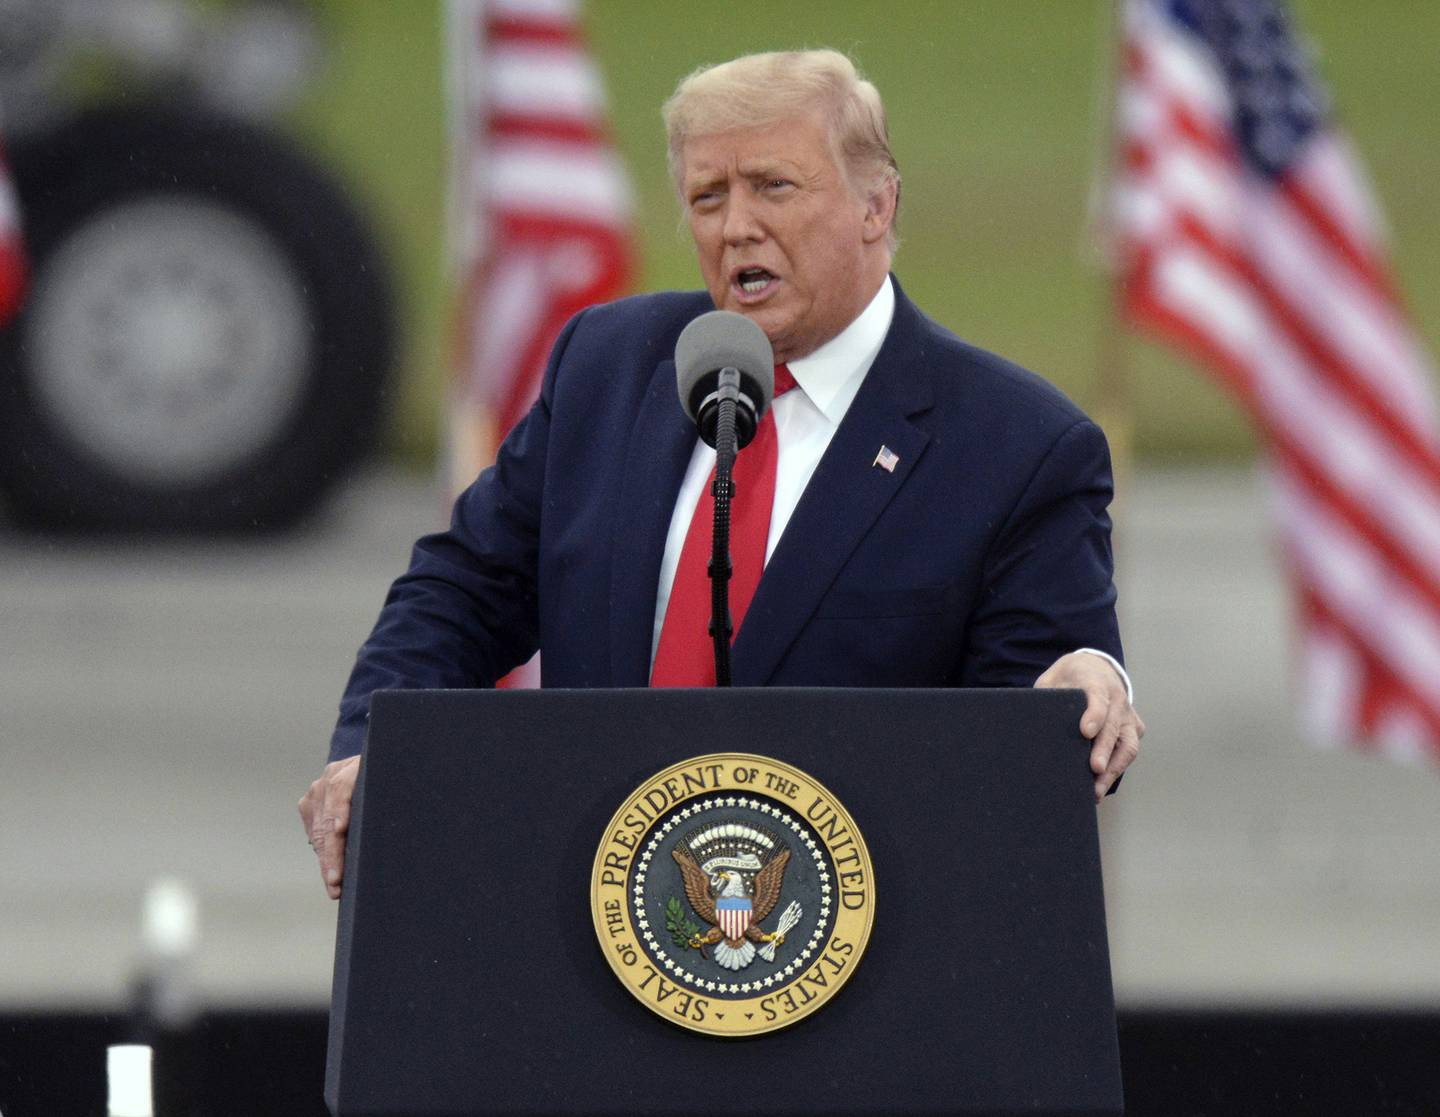 President Donald Trump speaks during a rally at MBS International Airport, Thursday, Sept. 10, 2020, in Freeland, Mich.